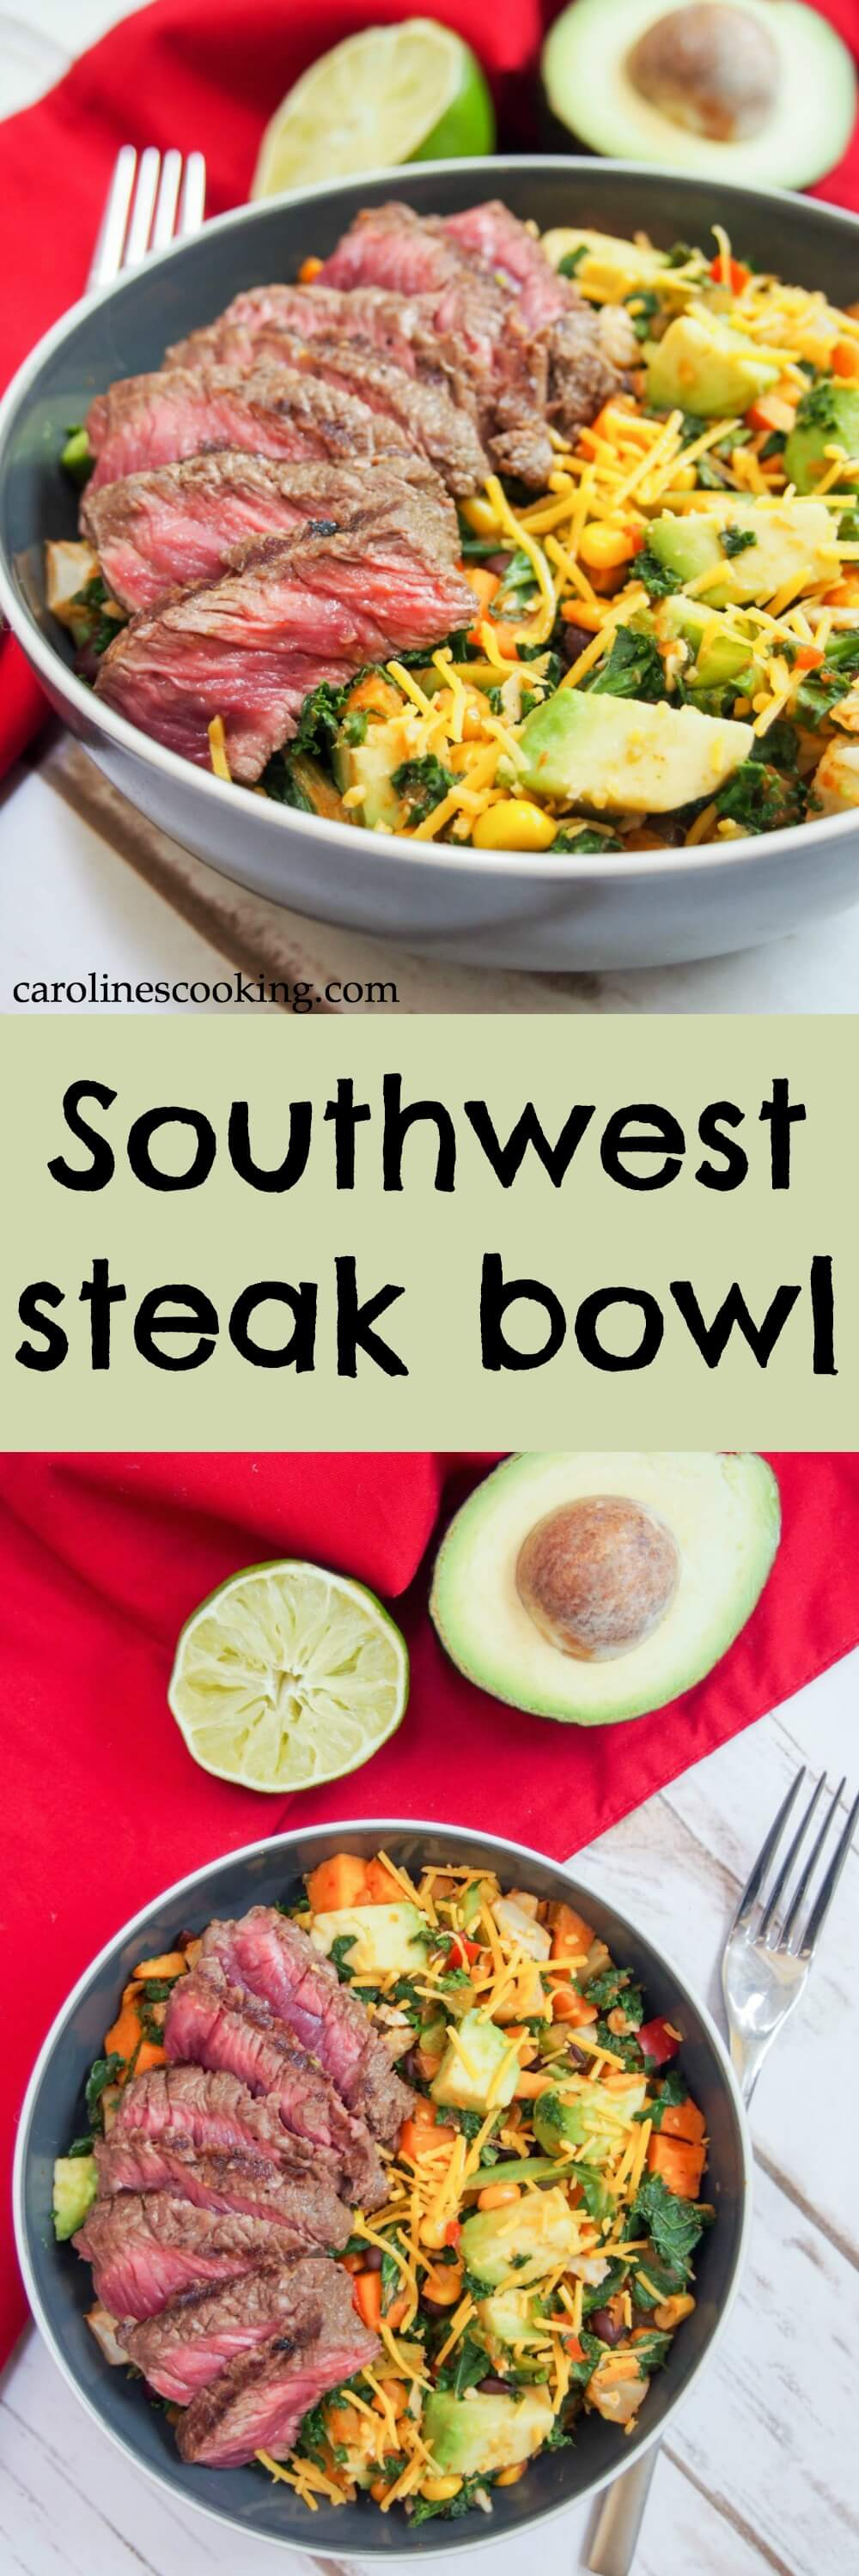 This Southwest steak bowl is a hearty bowl of deliciousness, but take mere minutes to make. Marinated steak over tasty veggies, it's the perfect easy dinner for a busy night. Any leftovers are great too! #AD #Nourish2Flourish